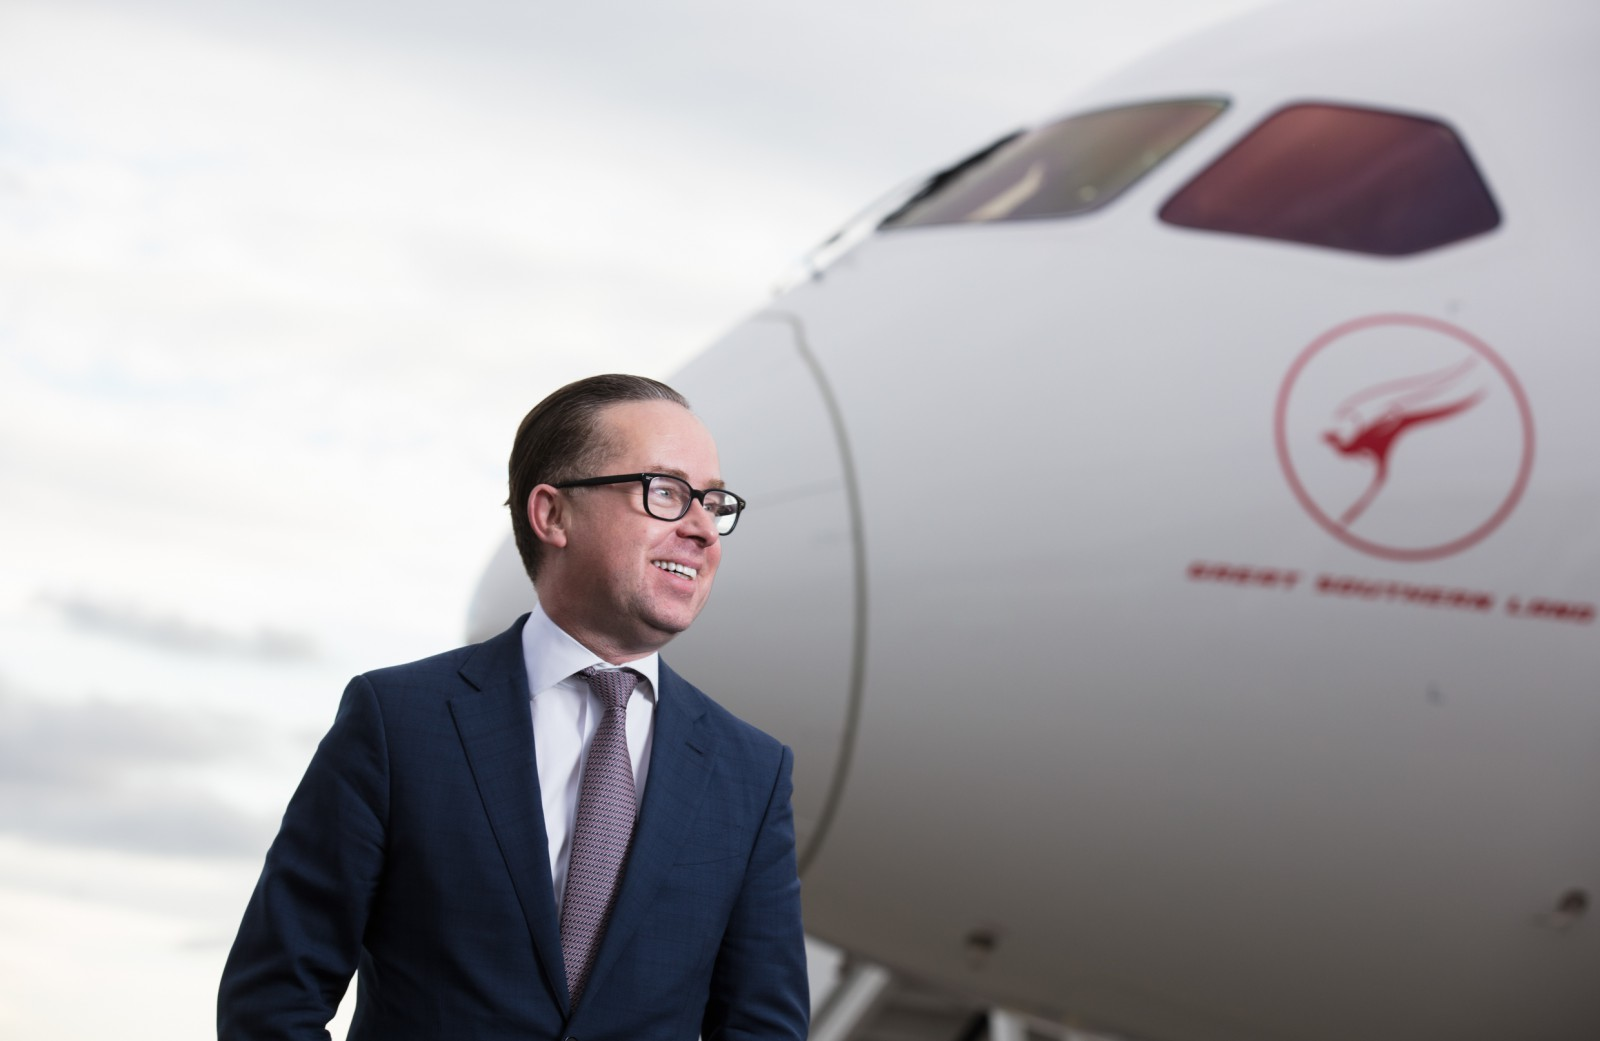 Qantas orders more Dreamliners and will retire all 747's by 2020